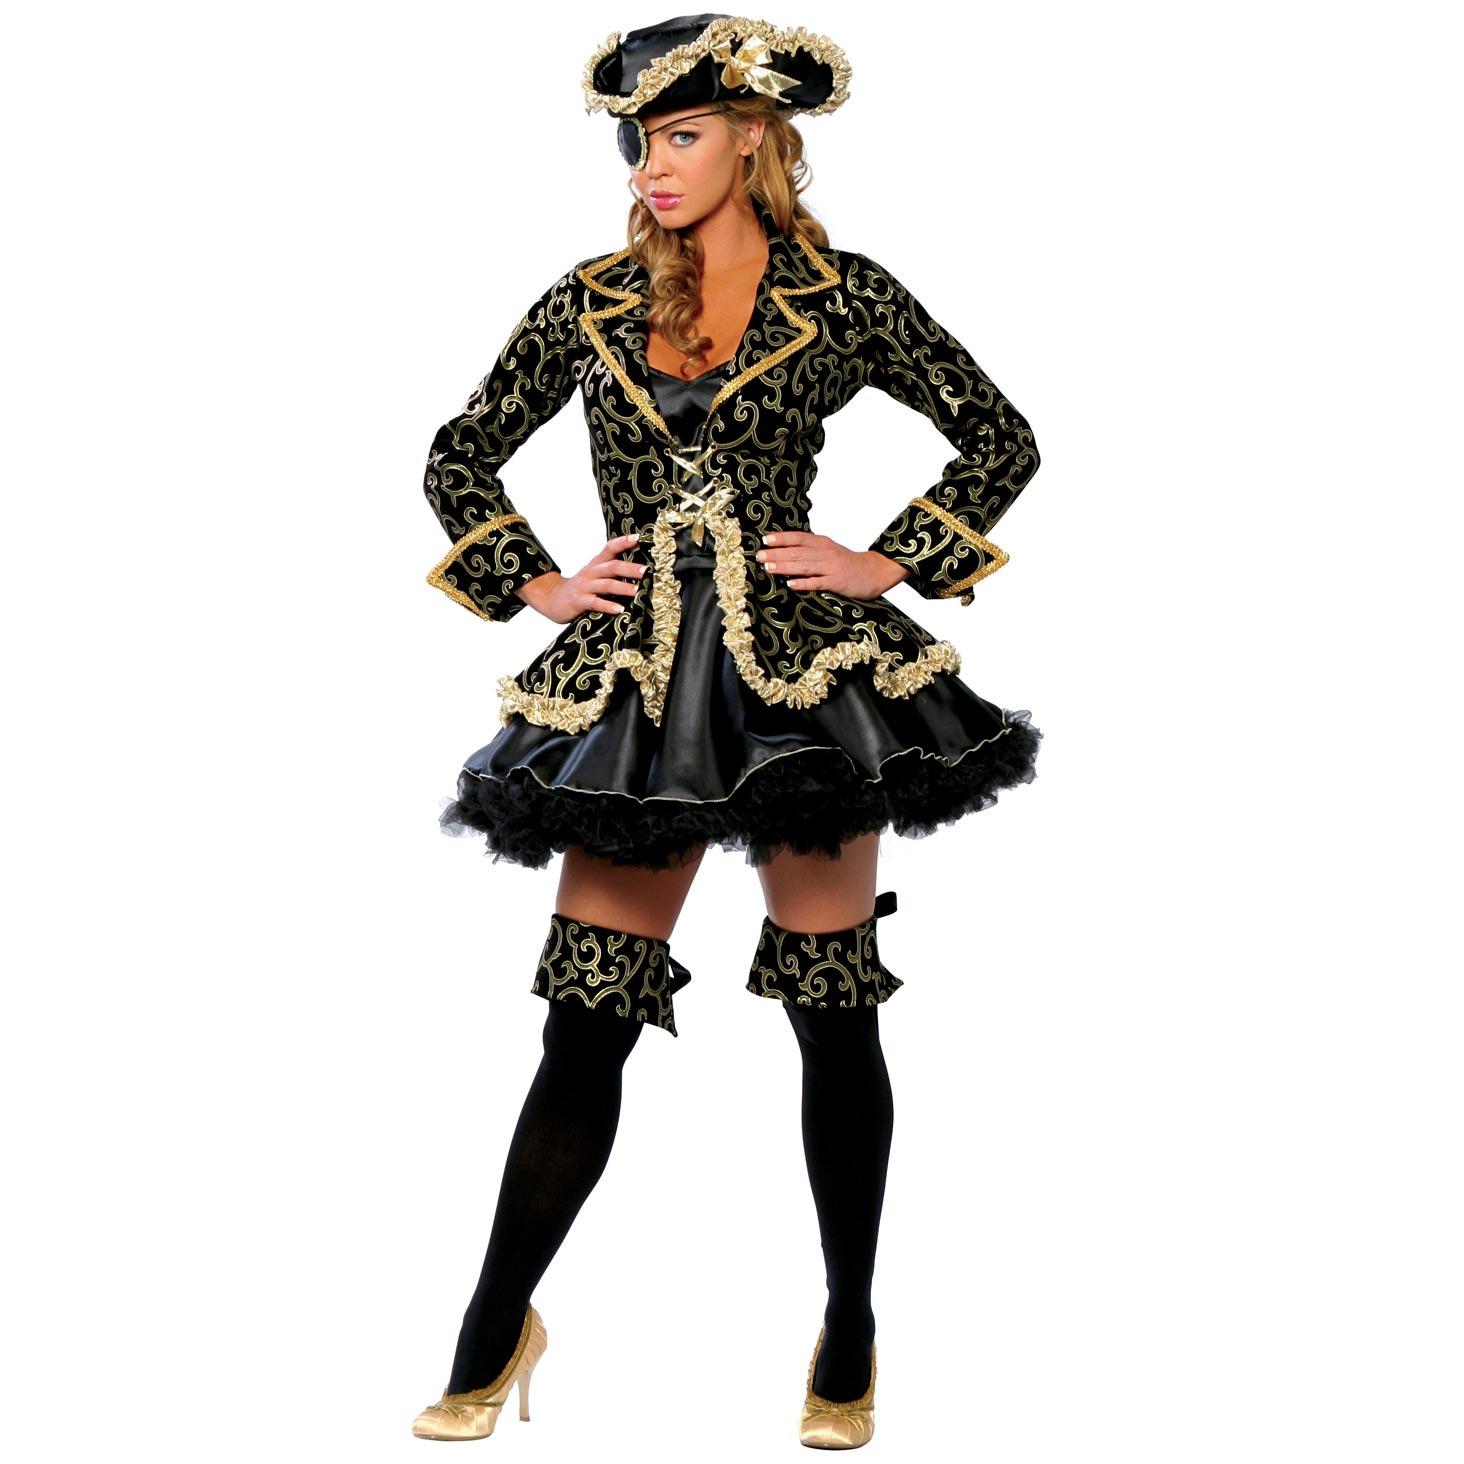 Sexy pirate halloween costume idea has